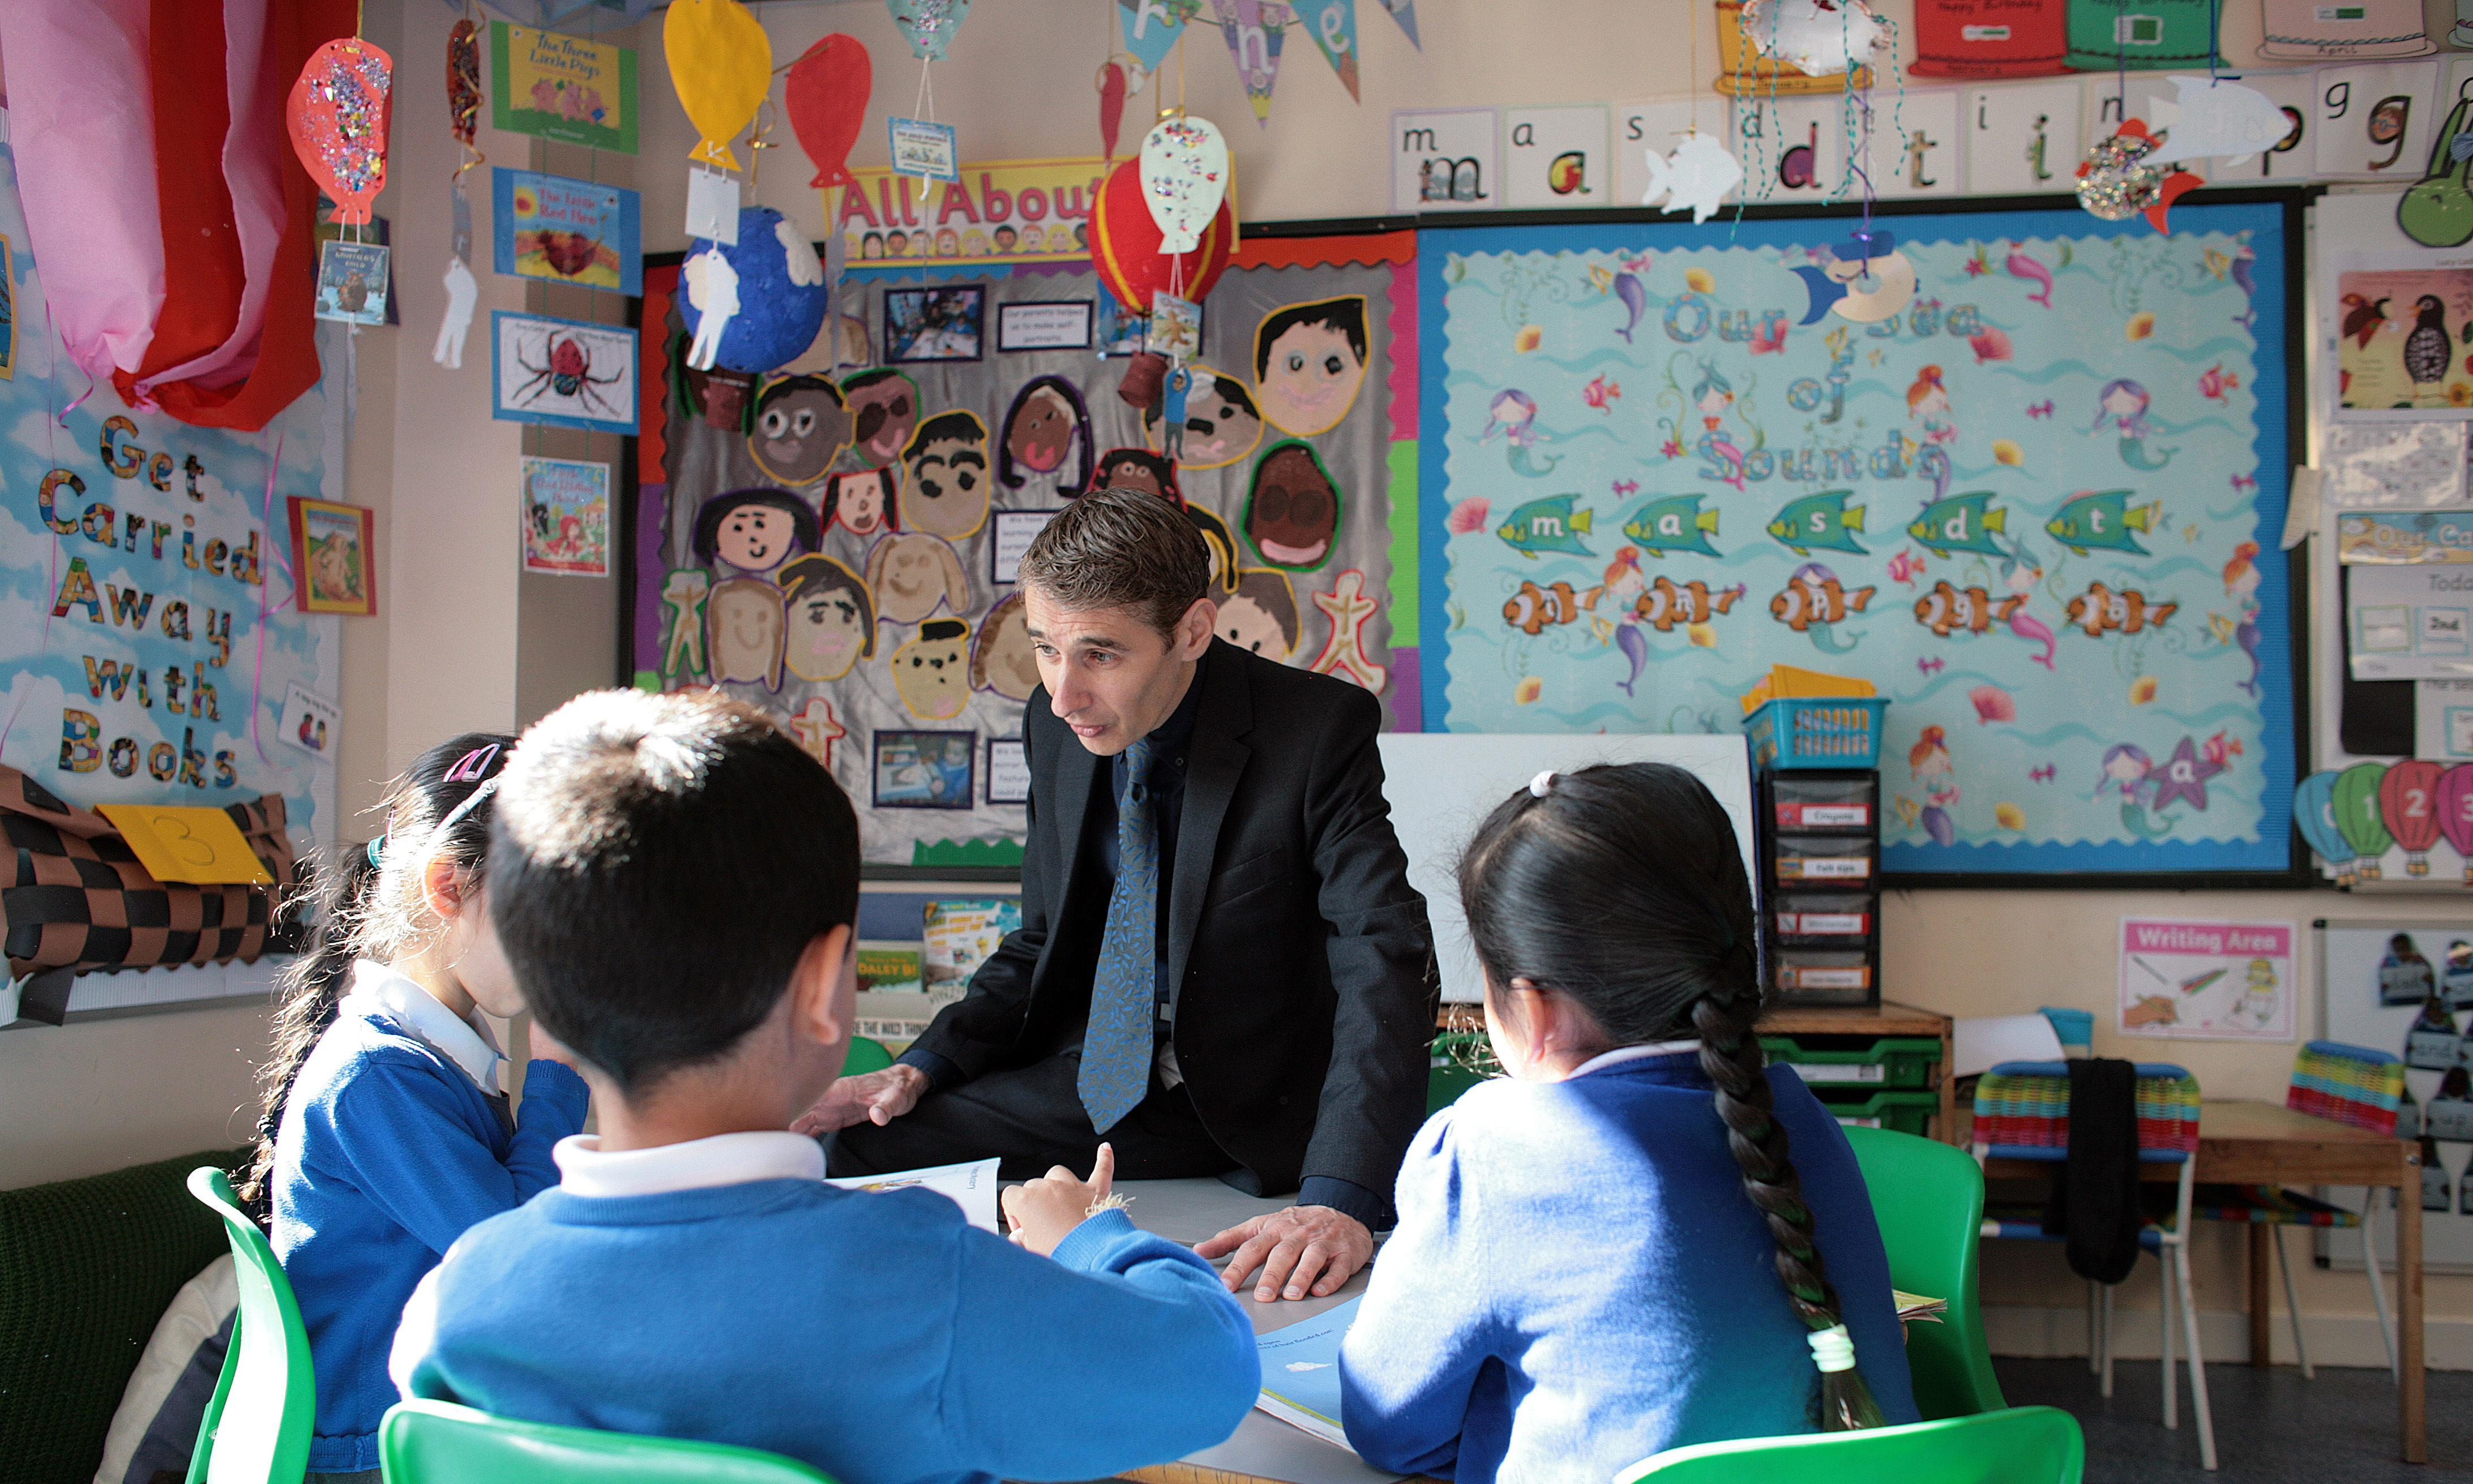 The Guardian view on impoverished schools: charity is not the answer